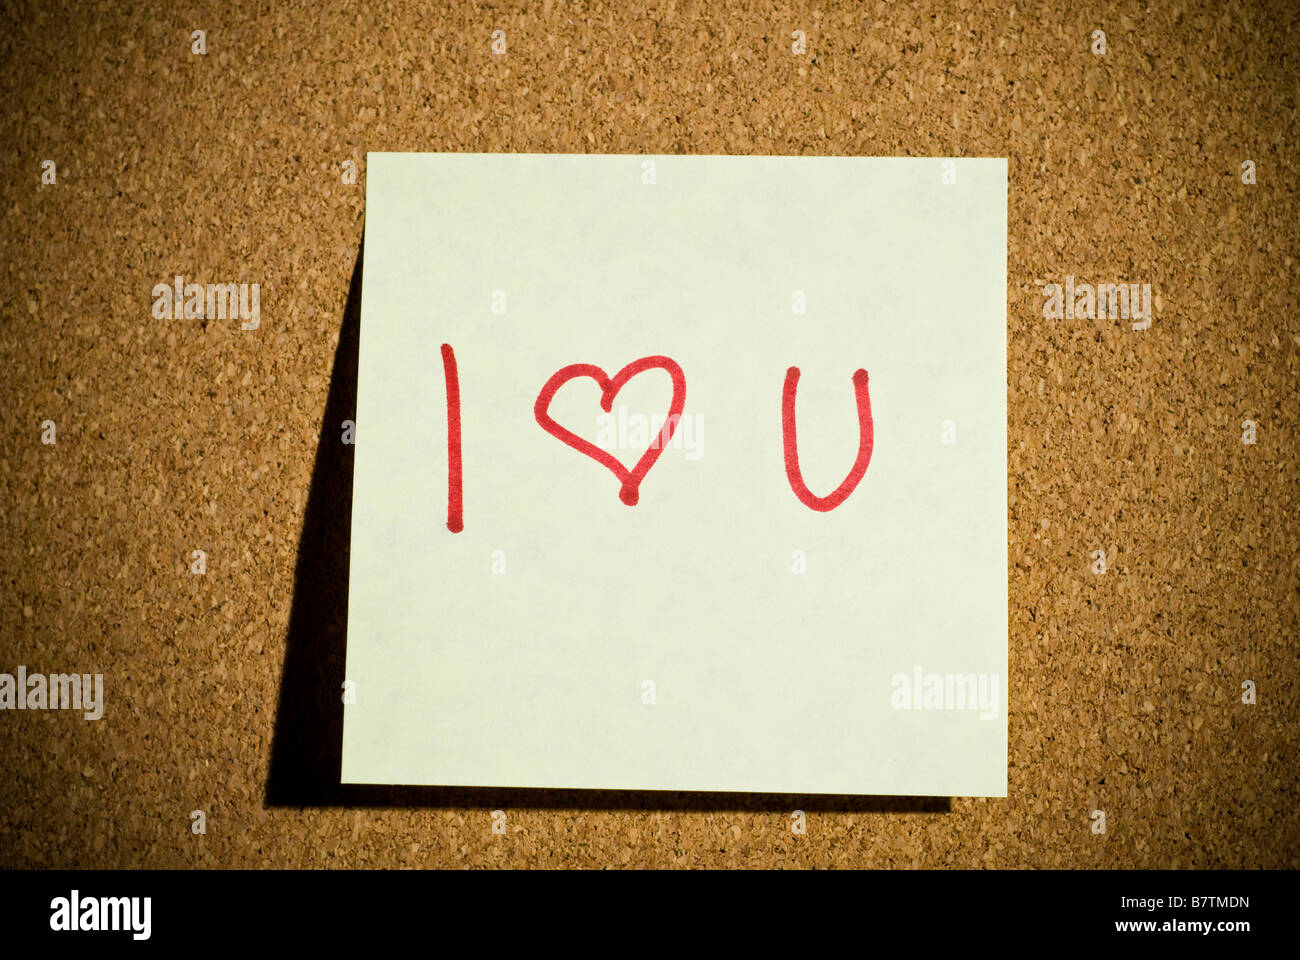 A post it note memo on a cork board that says I Love You with a heart. - Stock Image